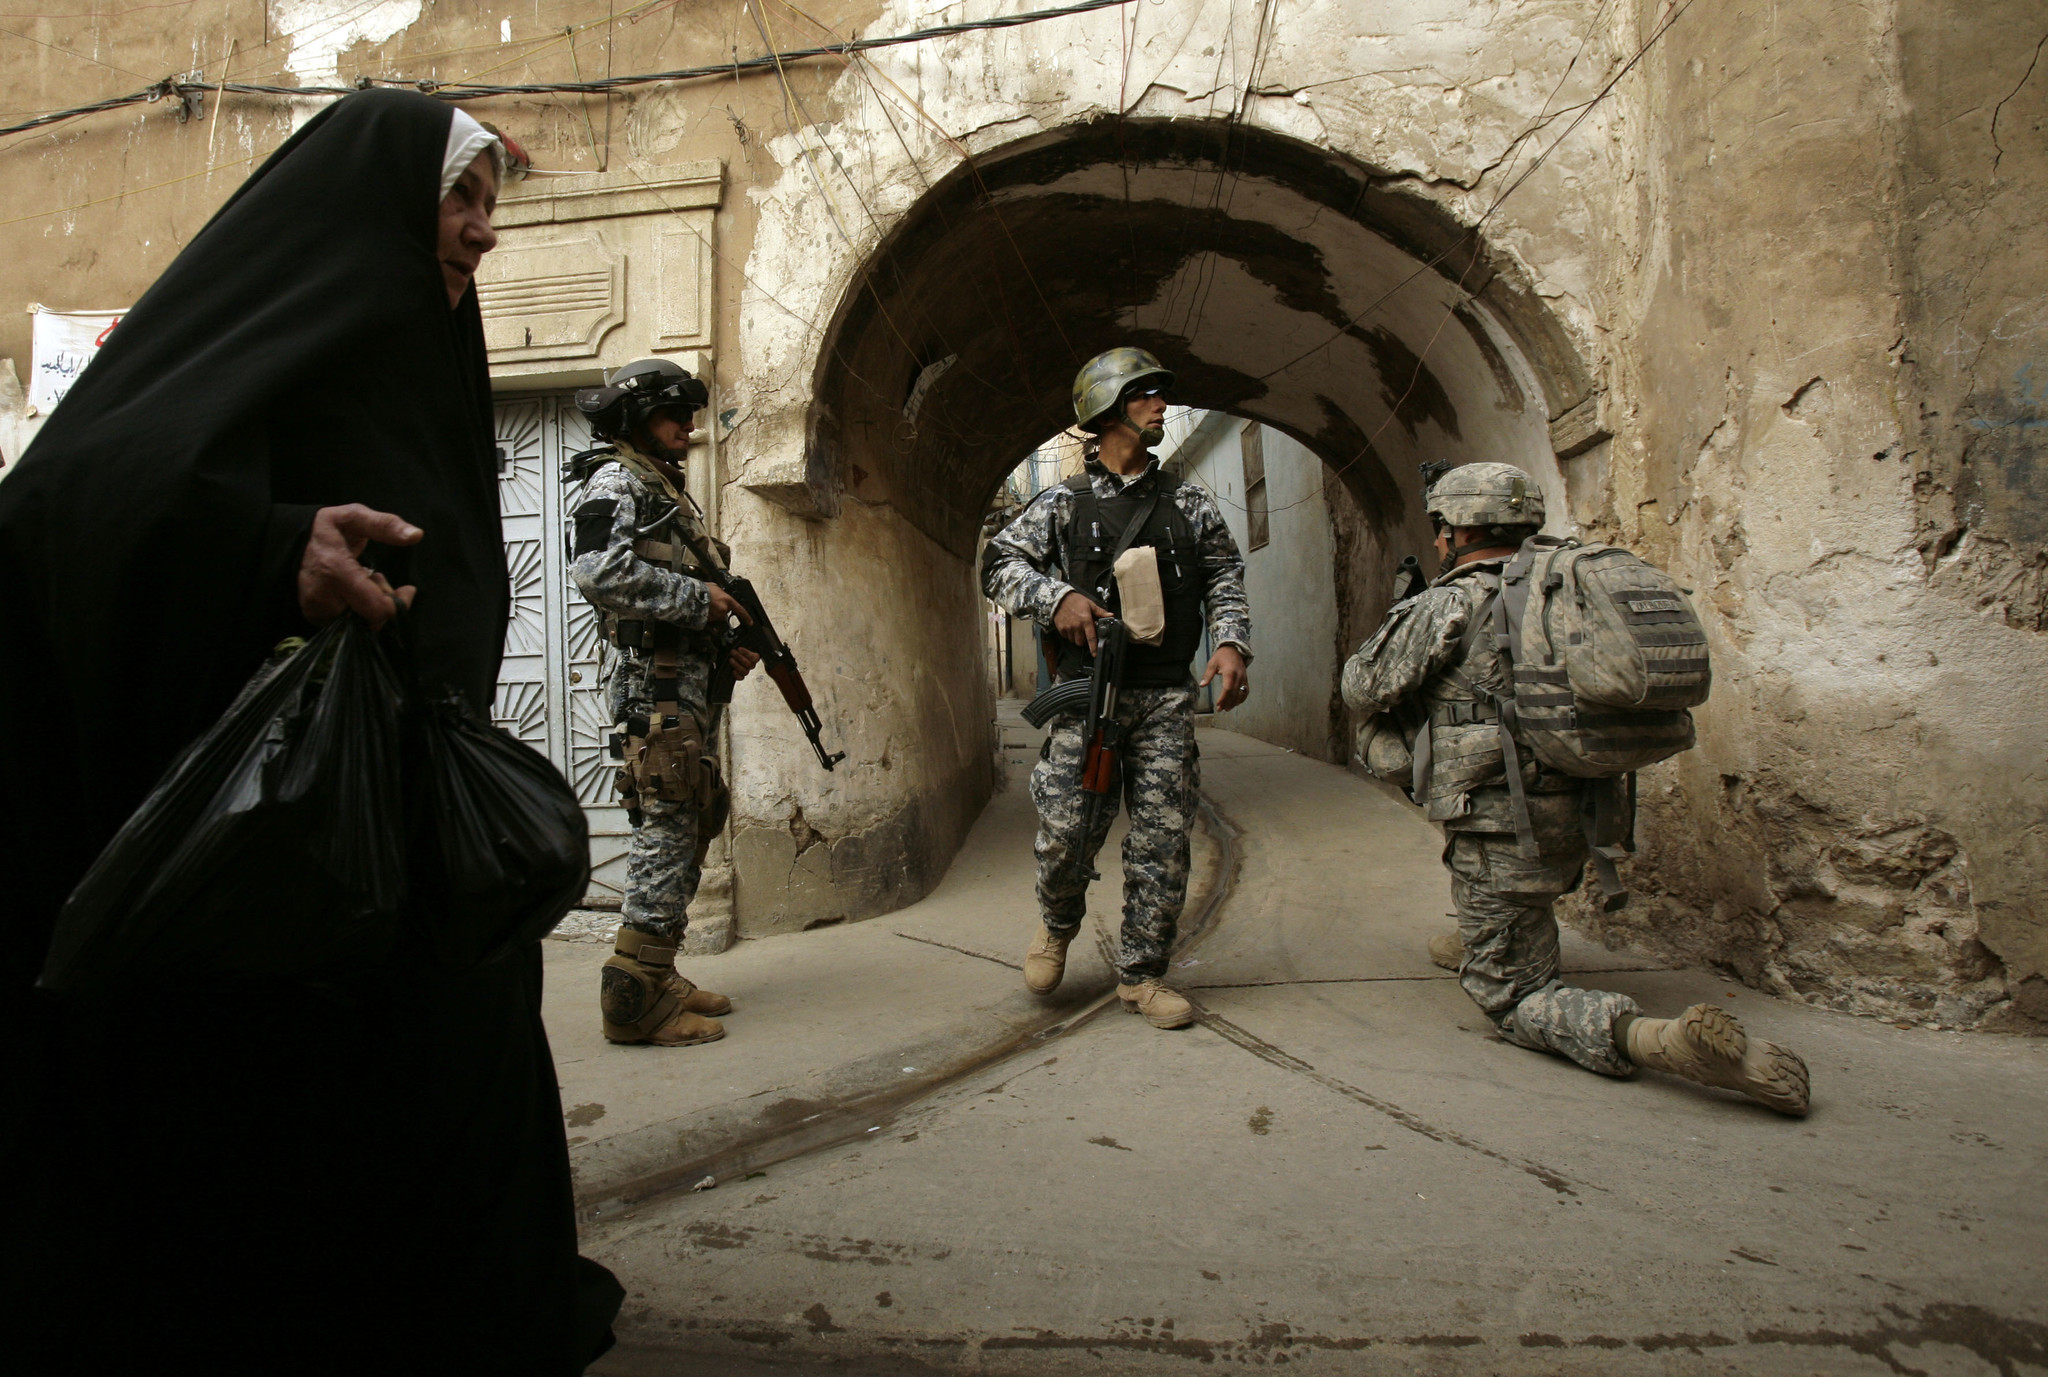 Officials: U.S. to send more troops to Iraq to help with Mosul